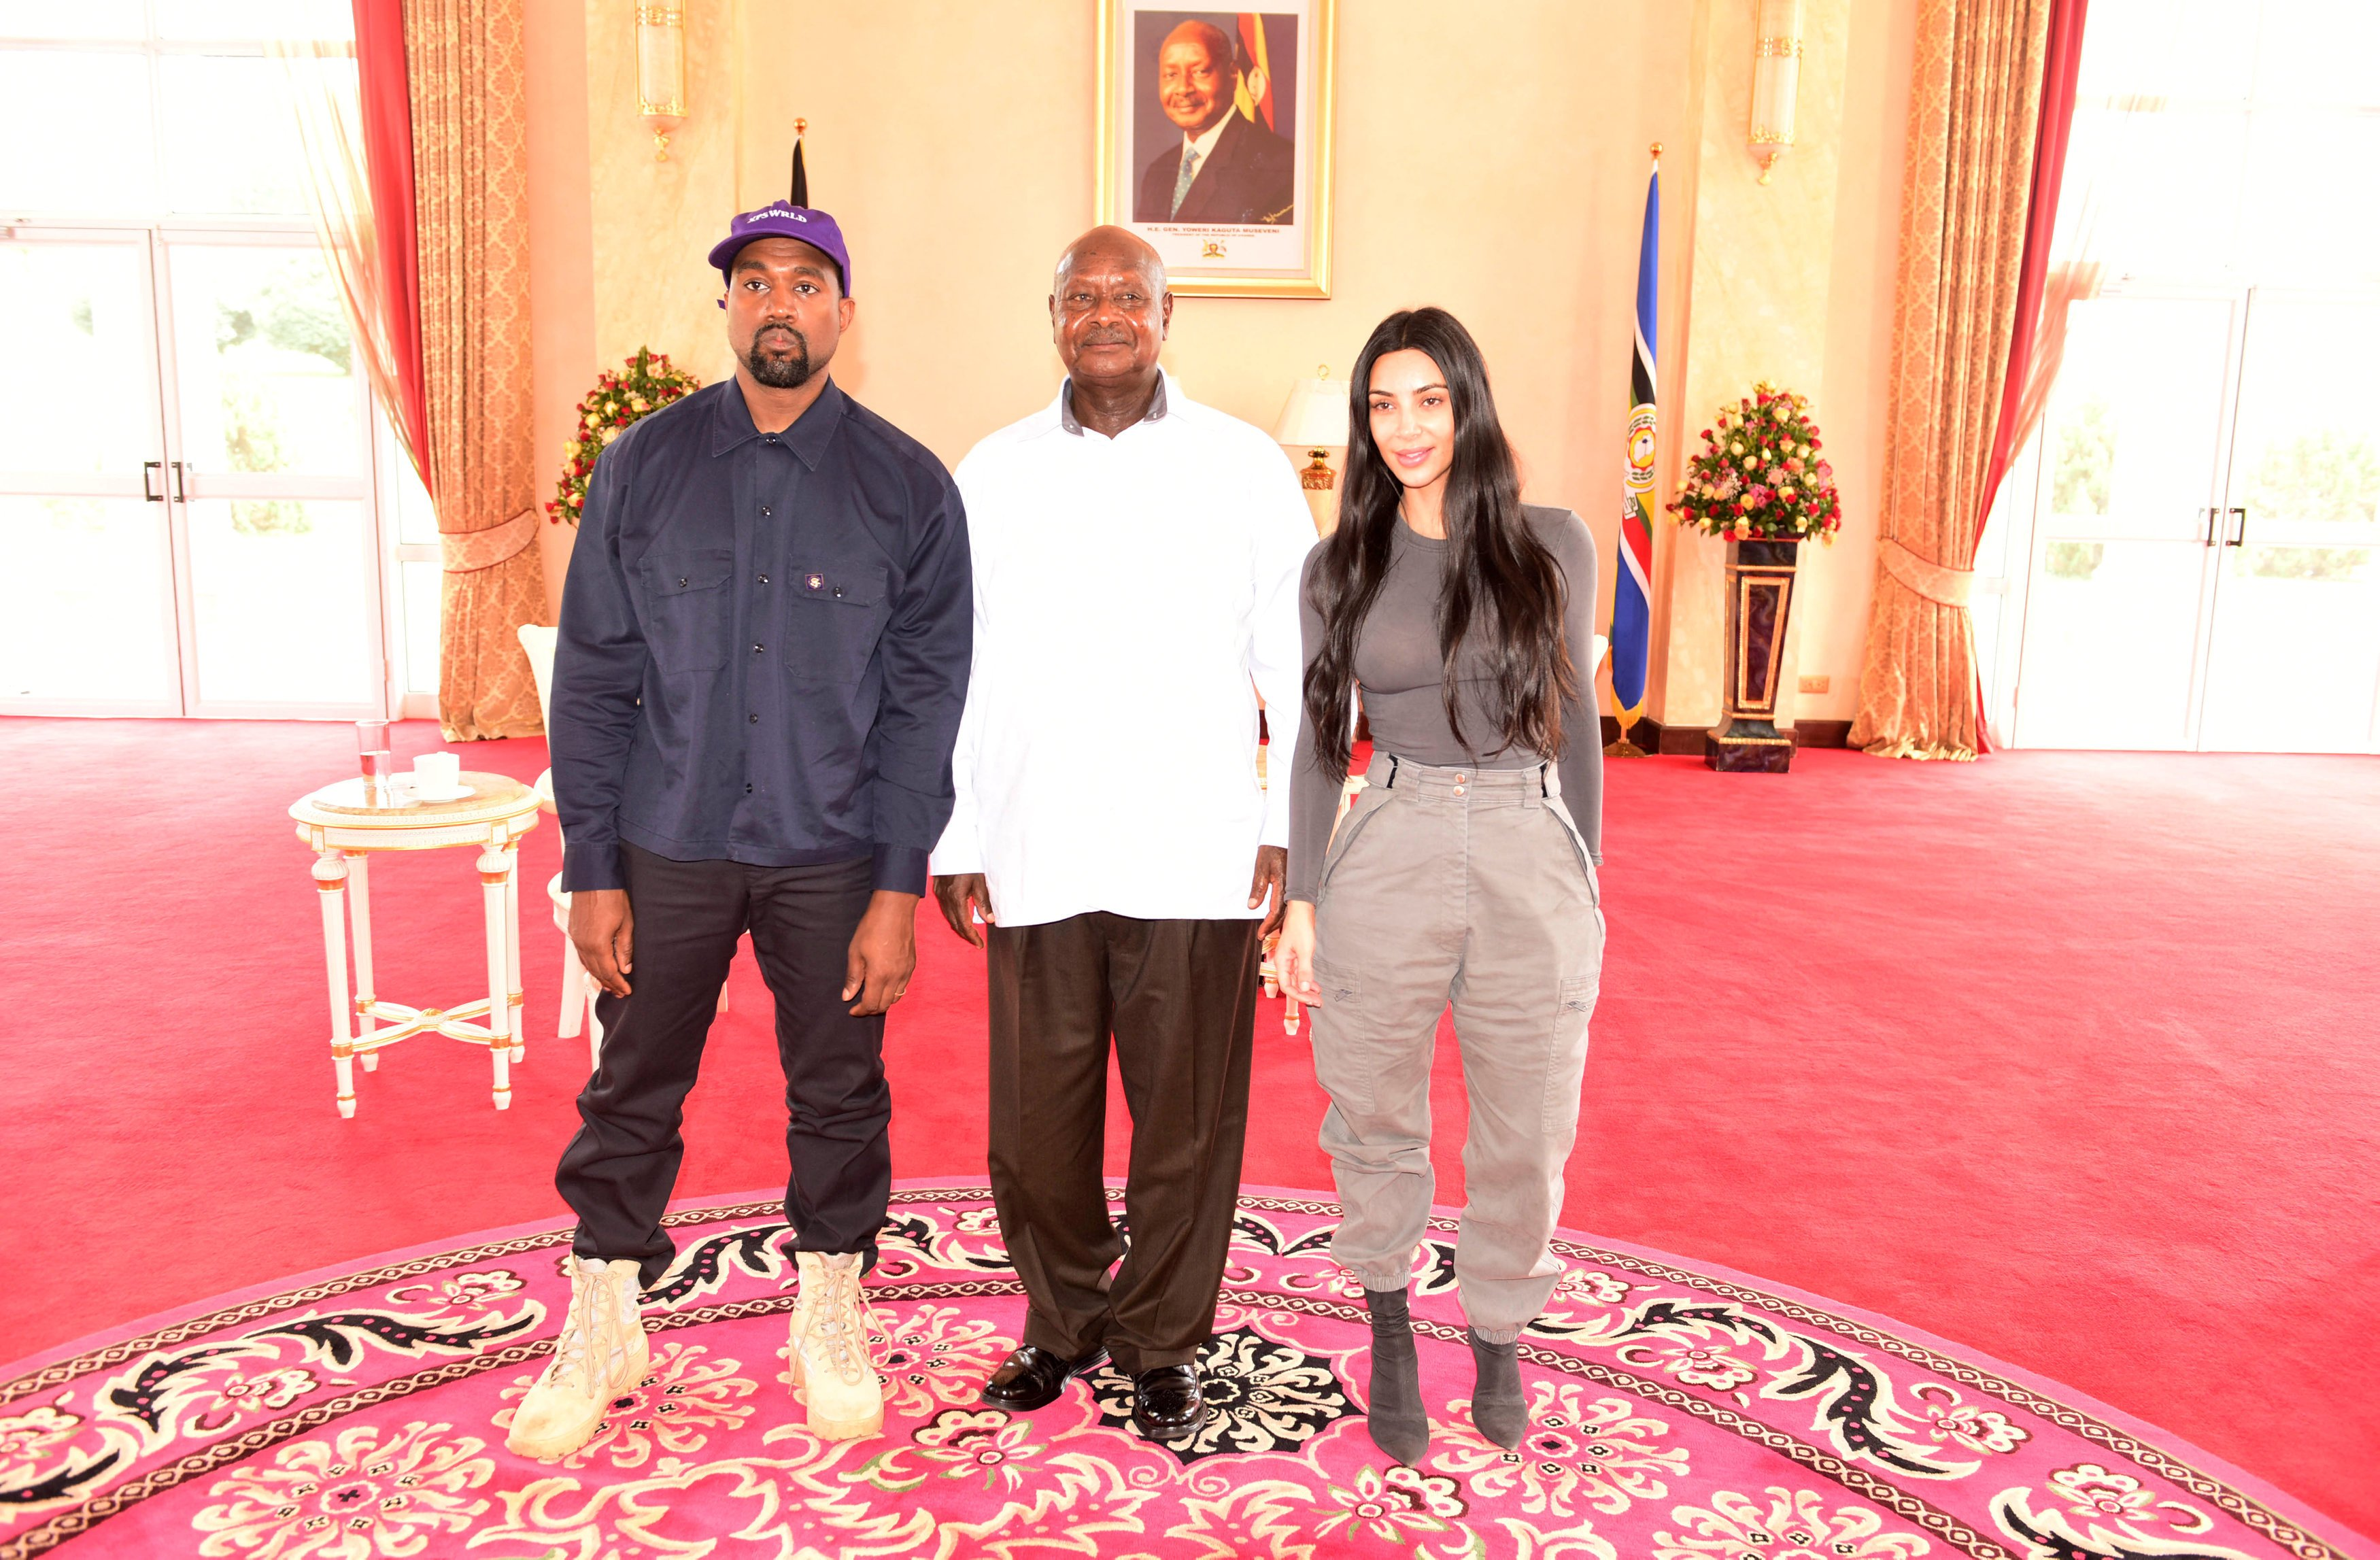 Rapper Kanye West (L) and Kim Kardashian (R) pose for a photograph with Uganda's President Yoweri Museveni when they paid a courtesy call at State House, Entebbe, Uganda October 15, 2018. Uganda's Presidential Press Office/HO/AFP/Getty Images